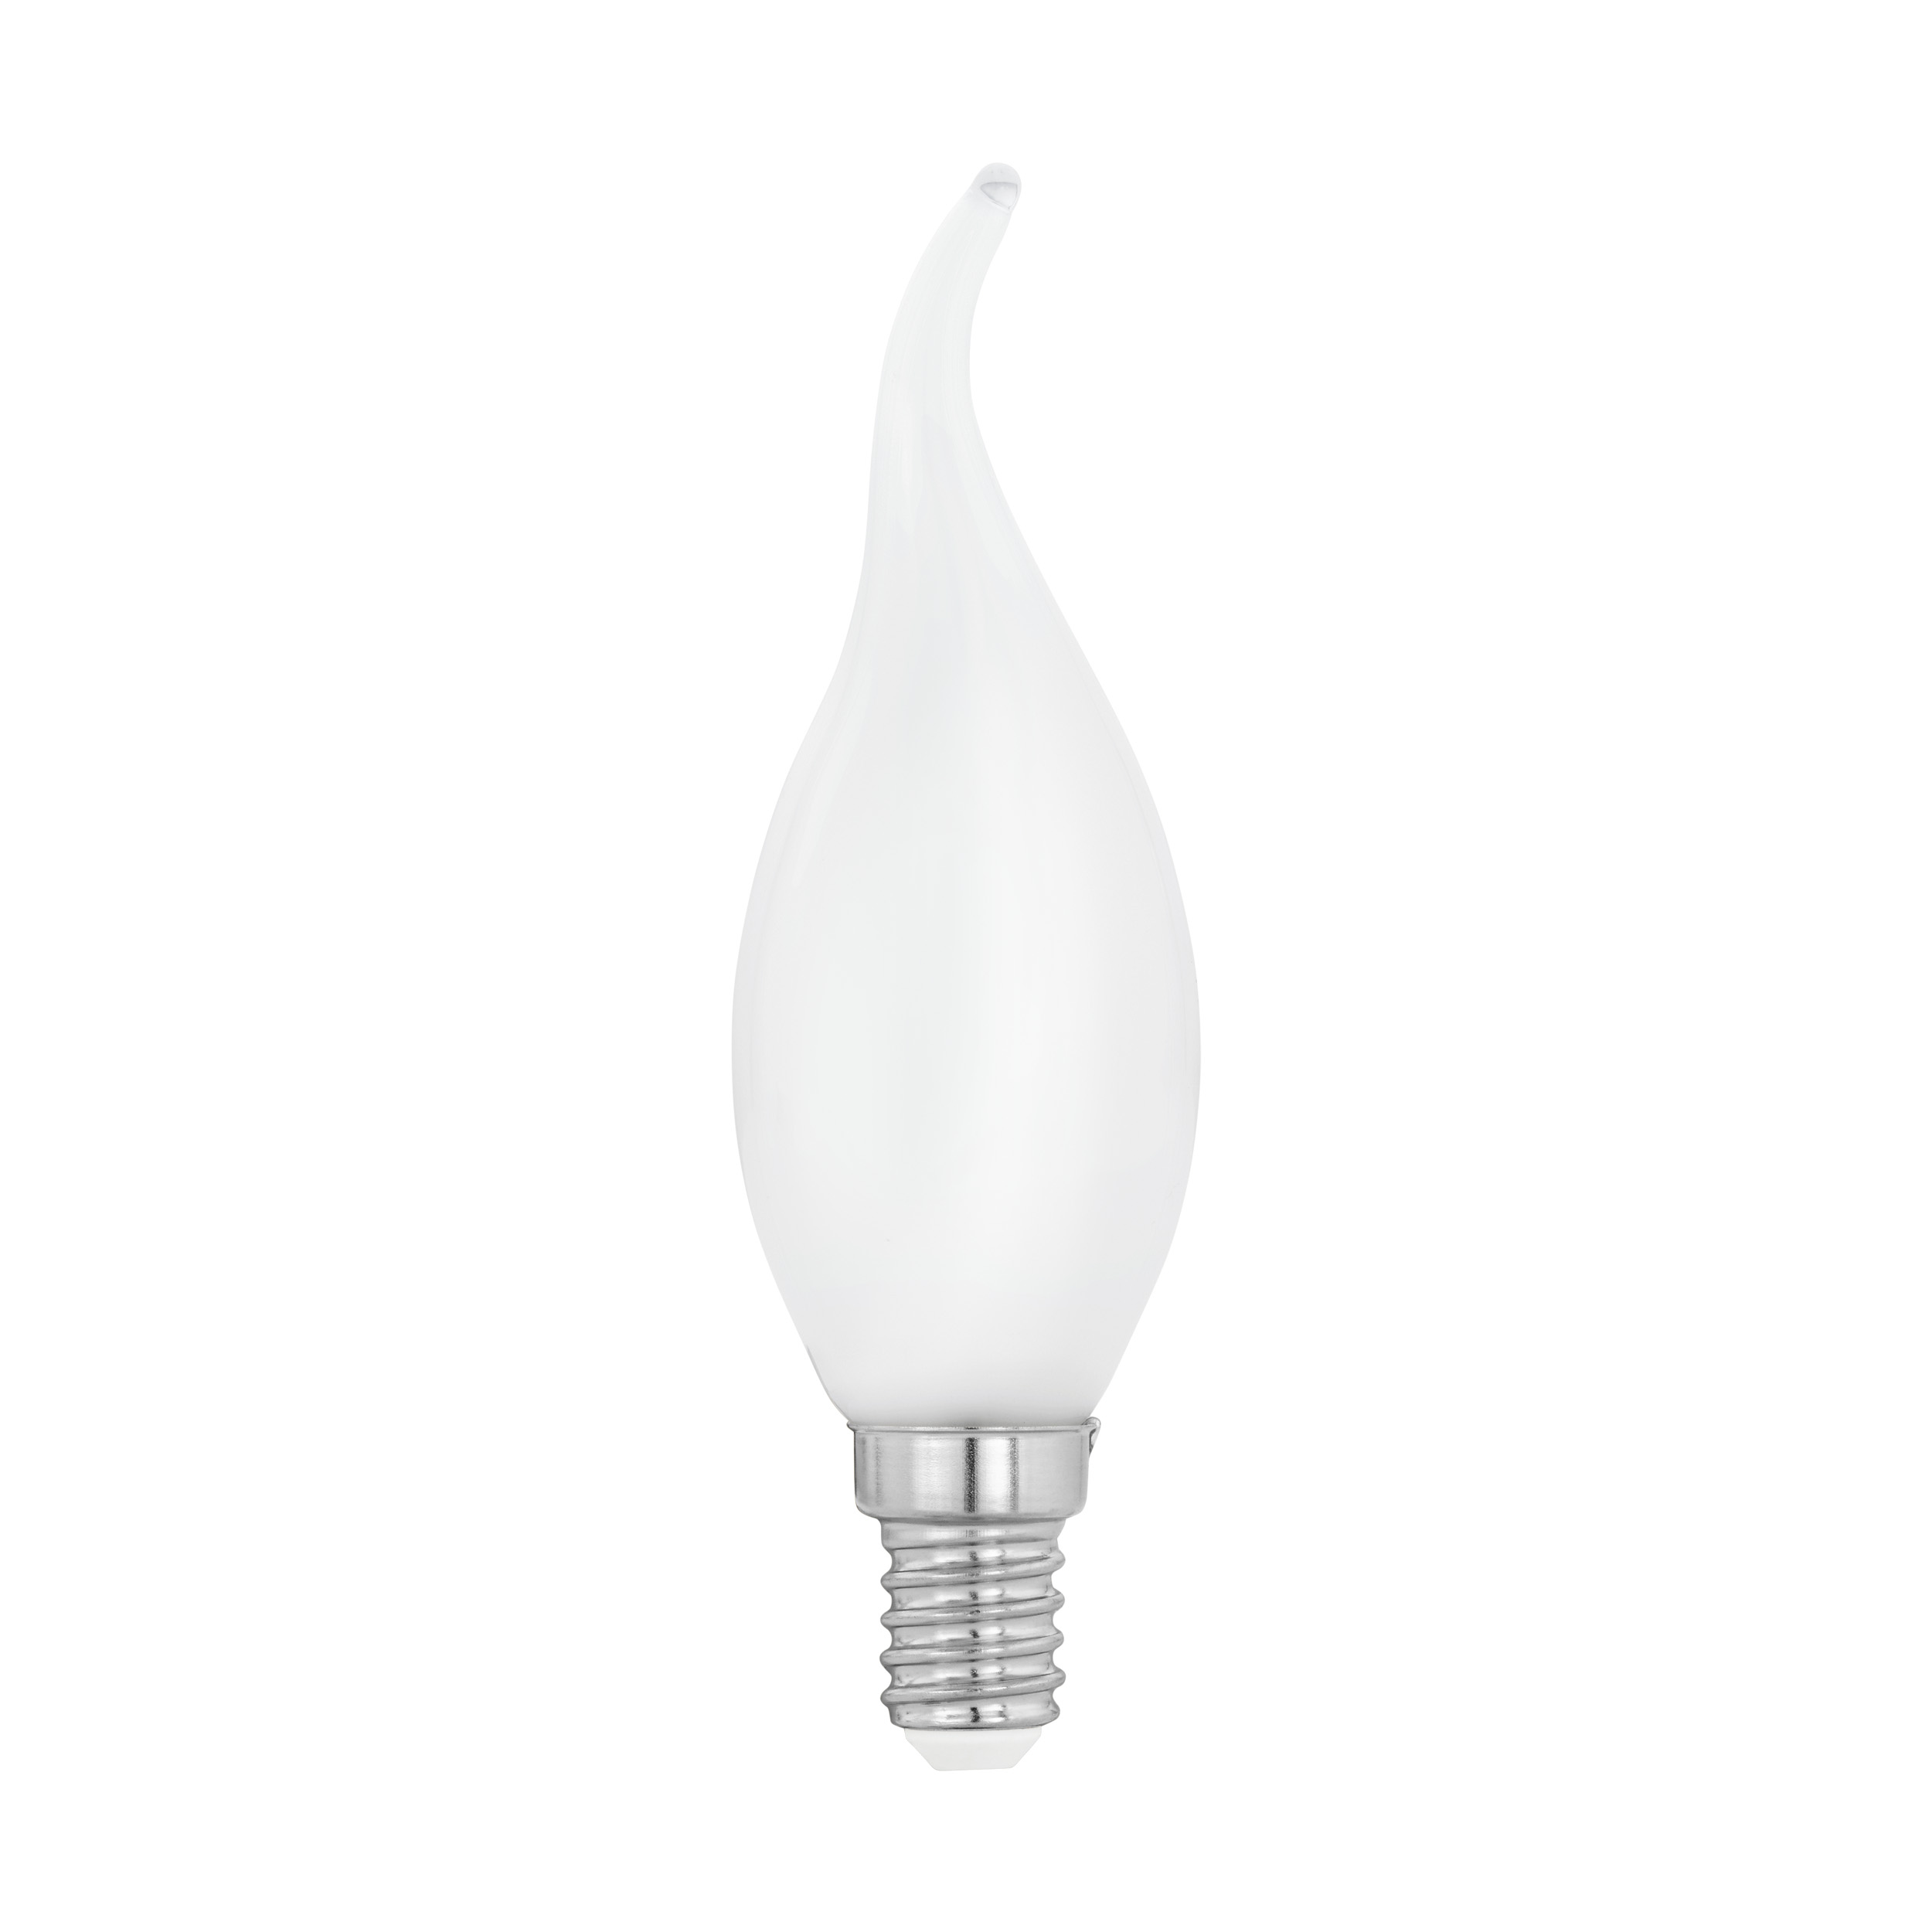 1 Stk E14-LED-CF37 4W / Windstosskerze 2700  LI69188---